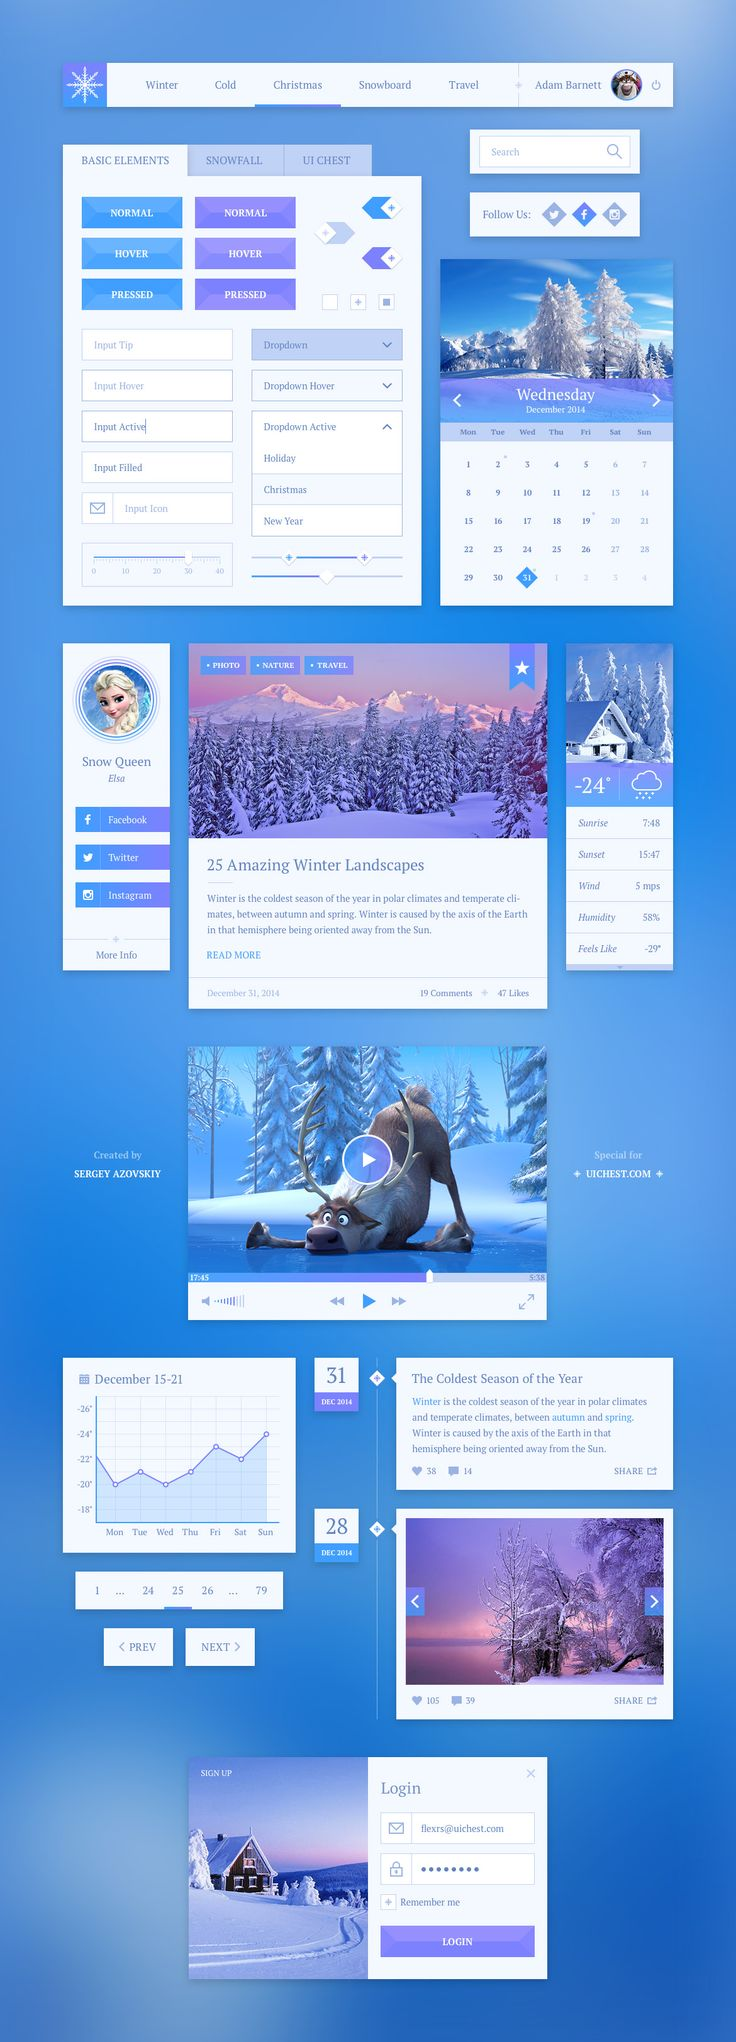 Snowflake UI Kit PSD is a simple charming winter themed UI kit. This kit includes 13 elements in PSD and adapt for your next web design project.